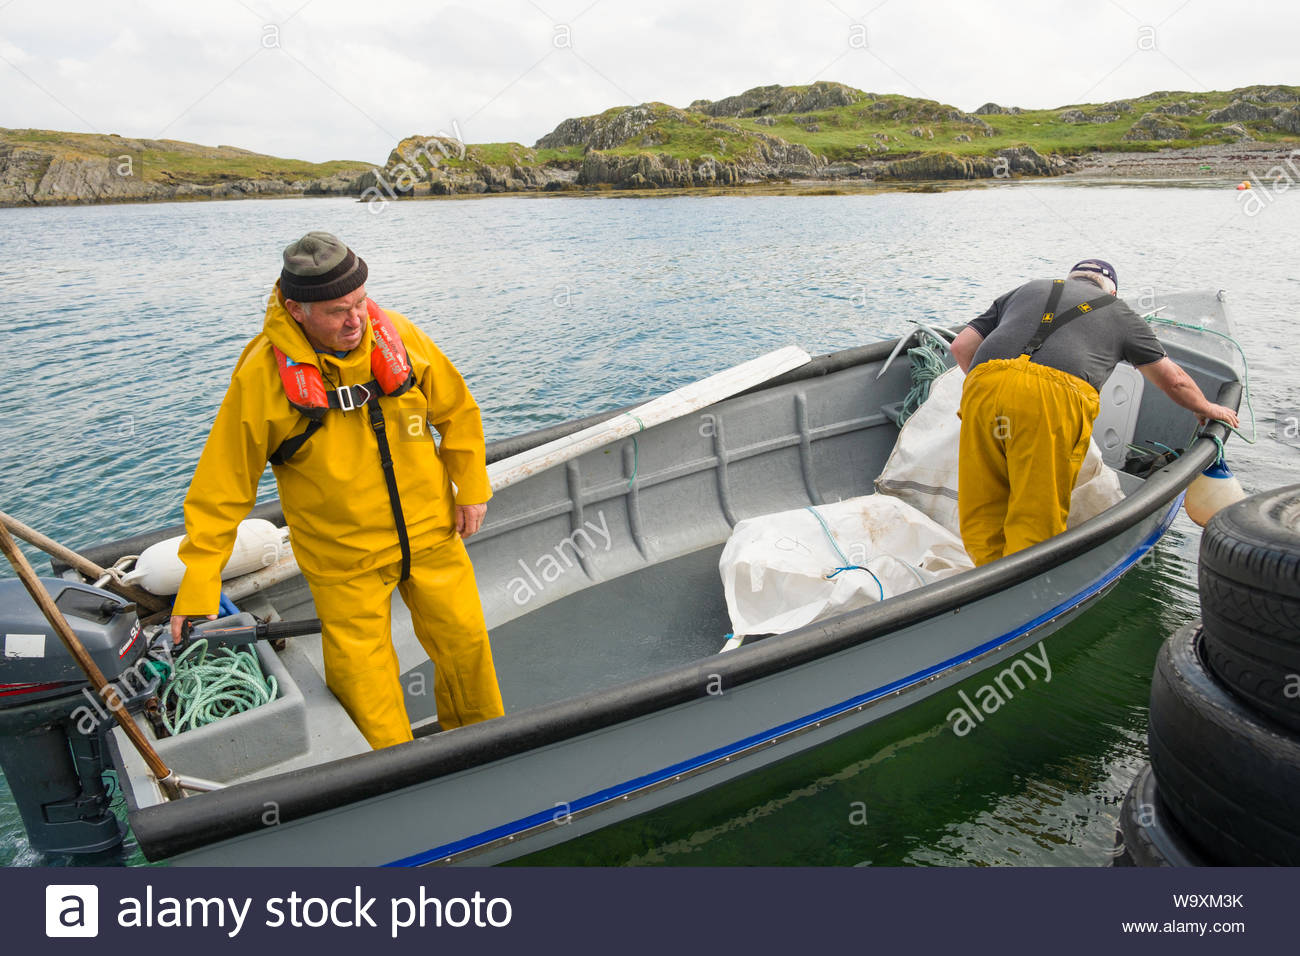 Irish man wearing yellow slicker rain suit and automatic inflating personal floatation device operating outboard motor in small boat Stock Photo